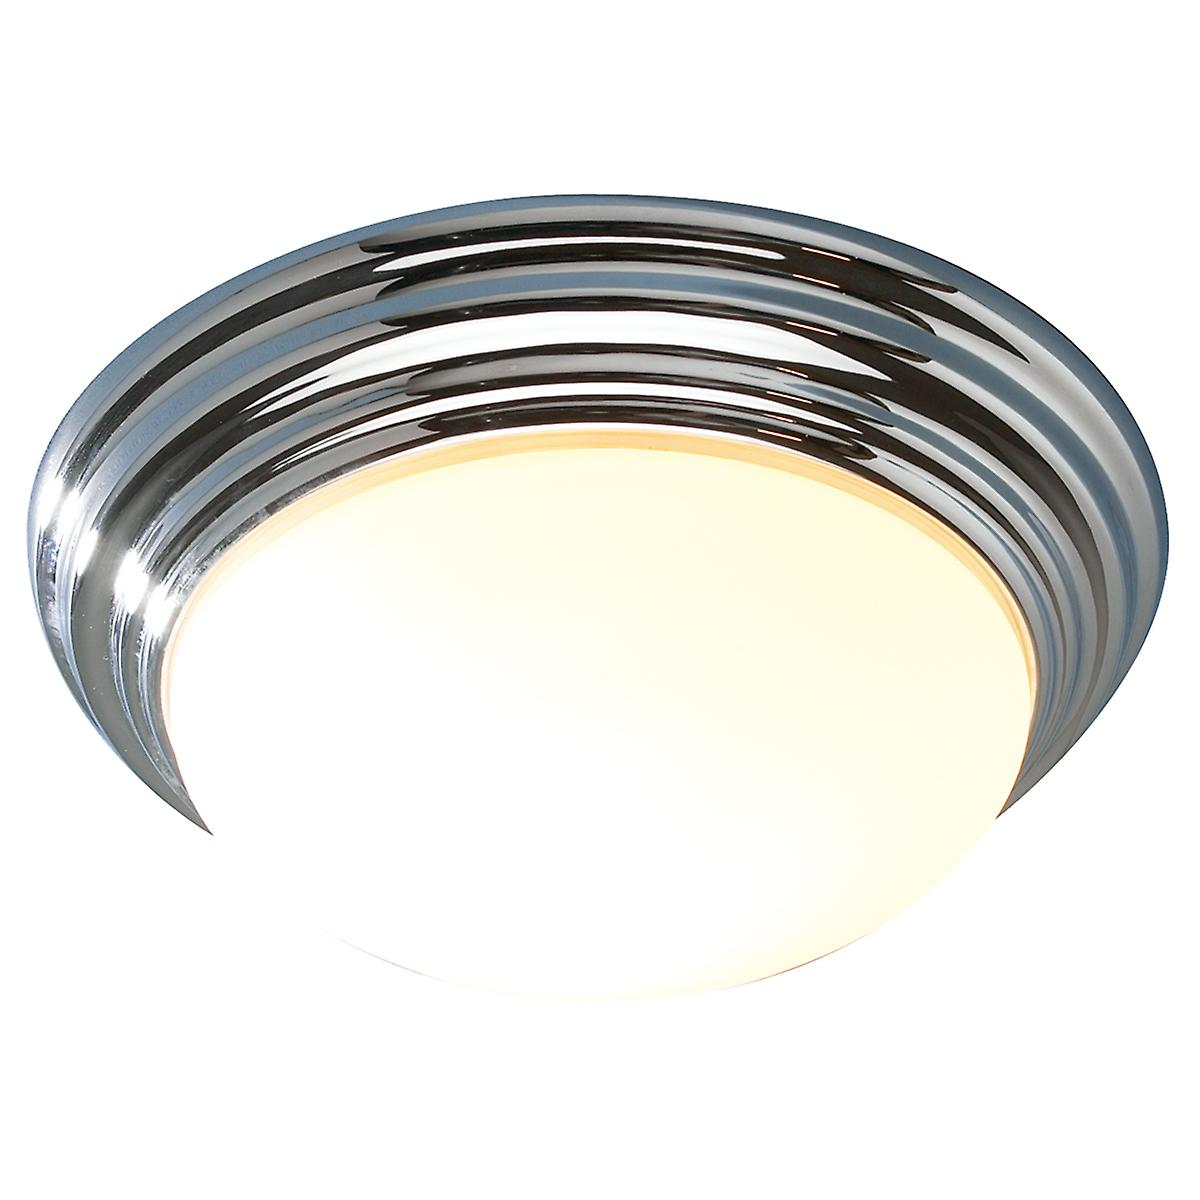 Dar BAR5050 Barclay Modern Chrome Bathroom Flush Ceiling Light - 38cm